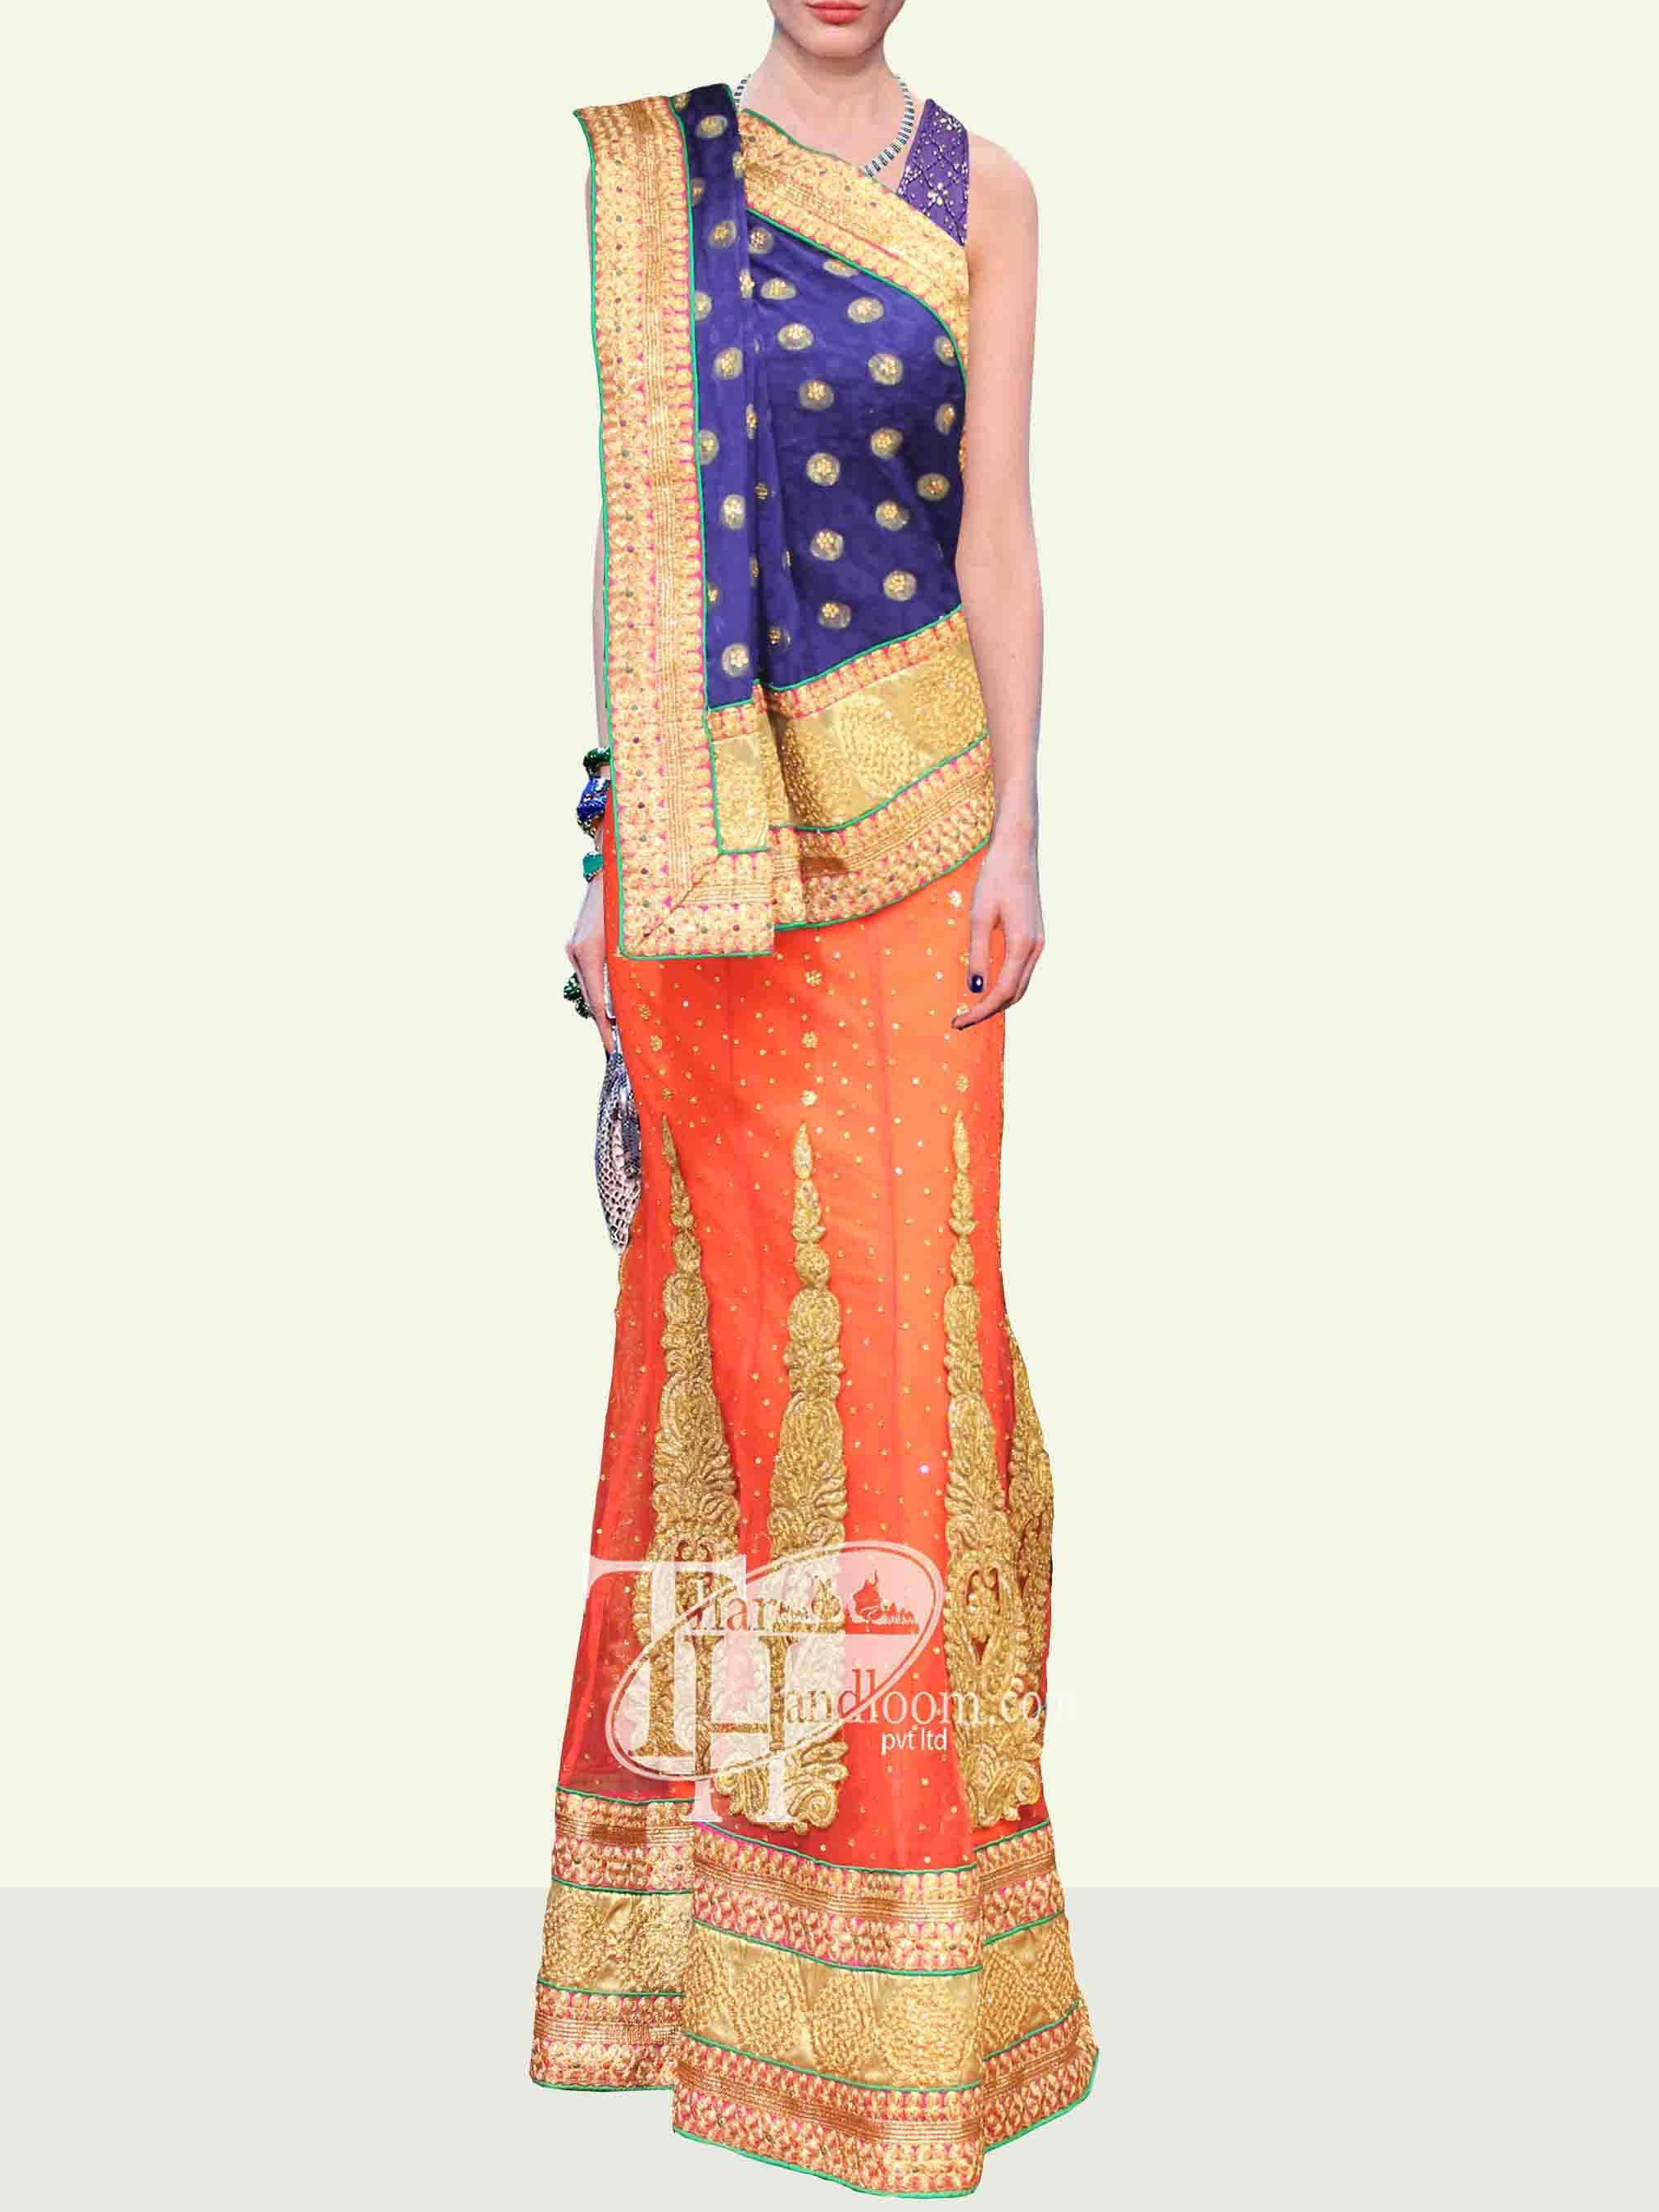 http://tharhandloom.in/sarees/designer-bollywood-saree?product_id=493